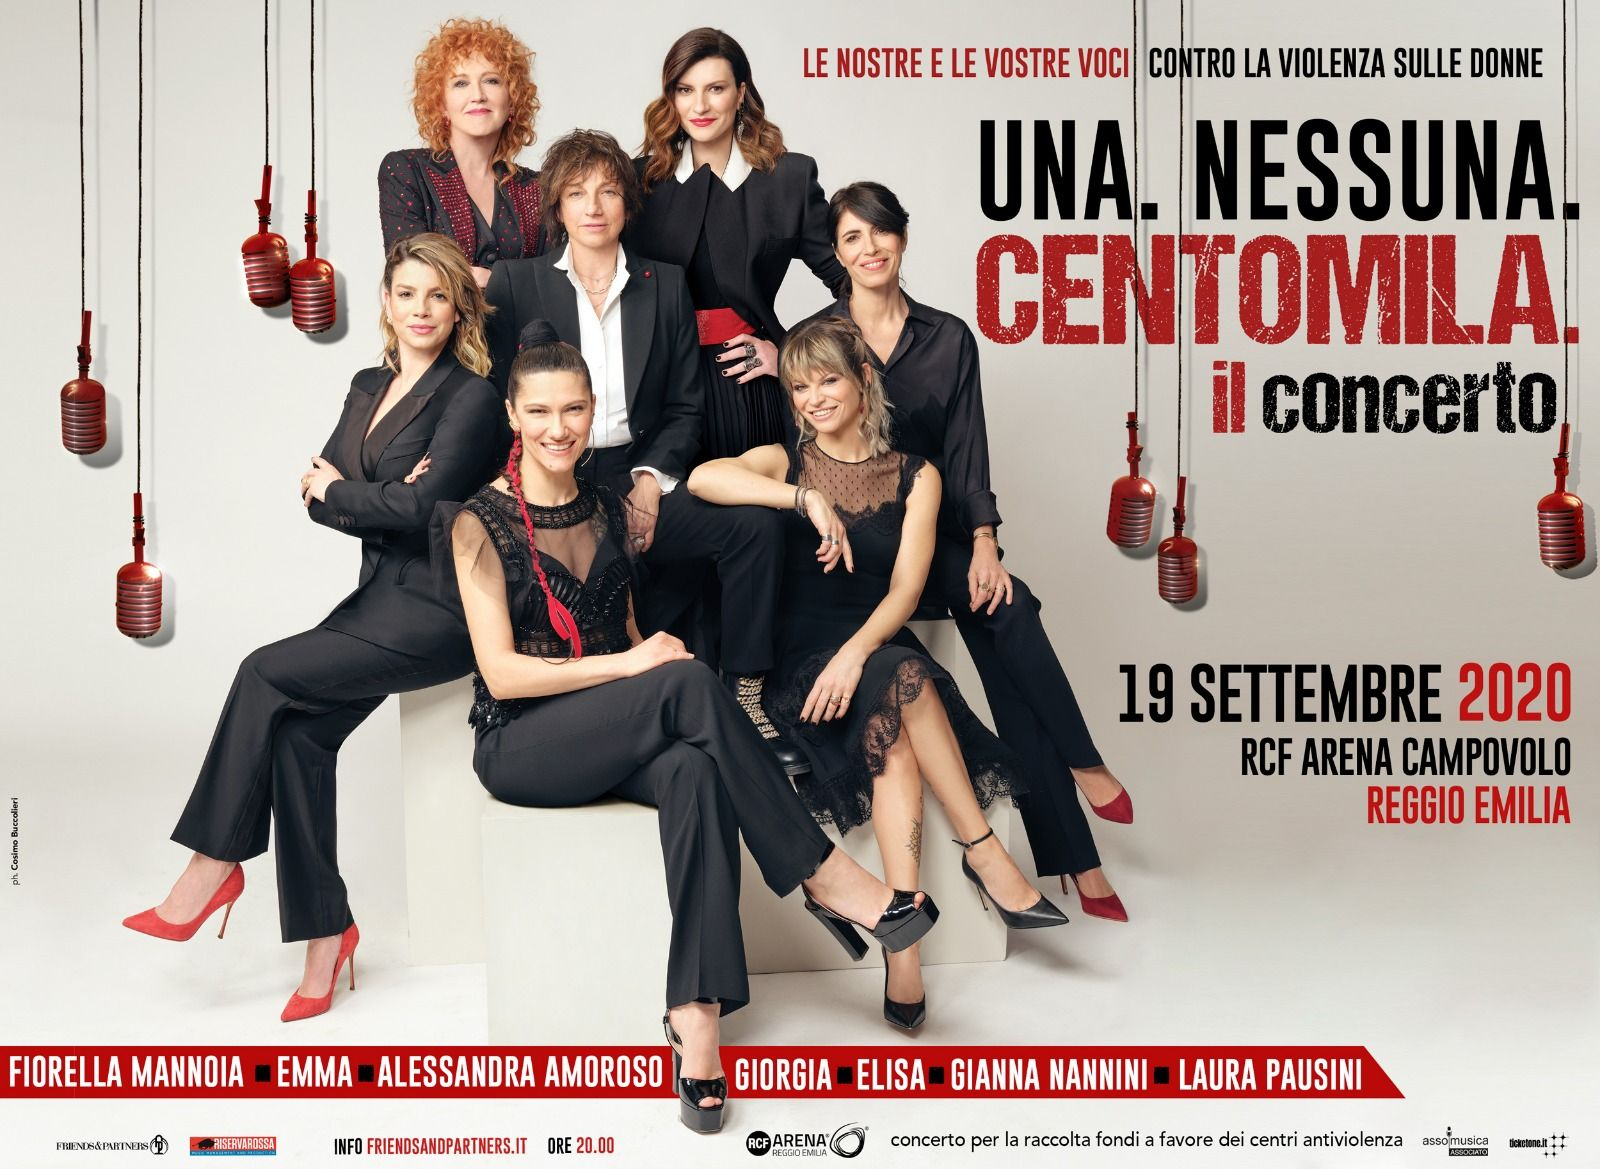 Una. Nessuna. Centomila. Il Concerto: more than 85.000 tickets sold in one month